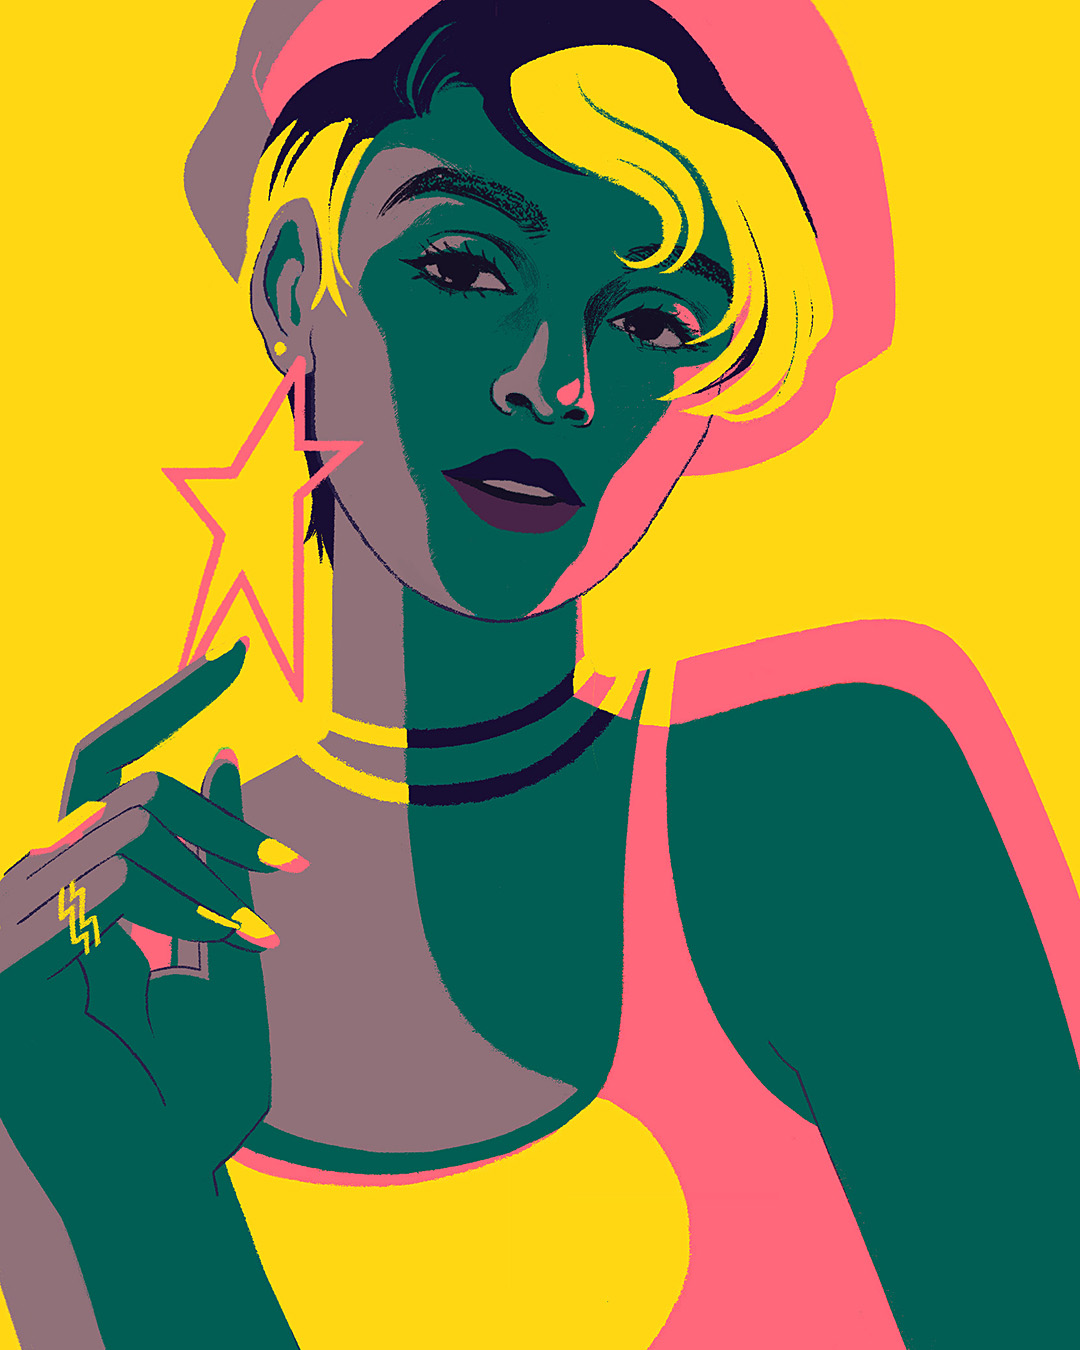 "THE NEW YORKER, <a href=""https://www.newyorker.com/goings-on-about-town/night-life/janelle-monae-2"">Janelle Monae</a>"